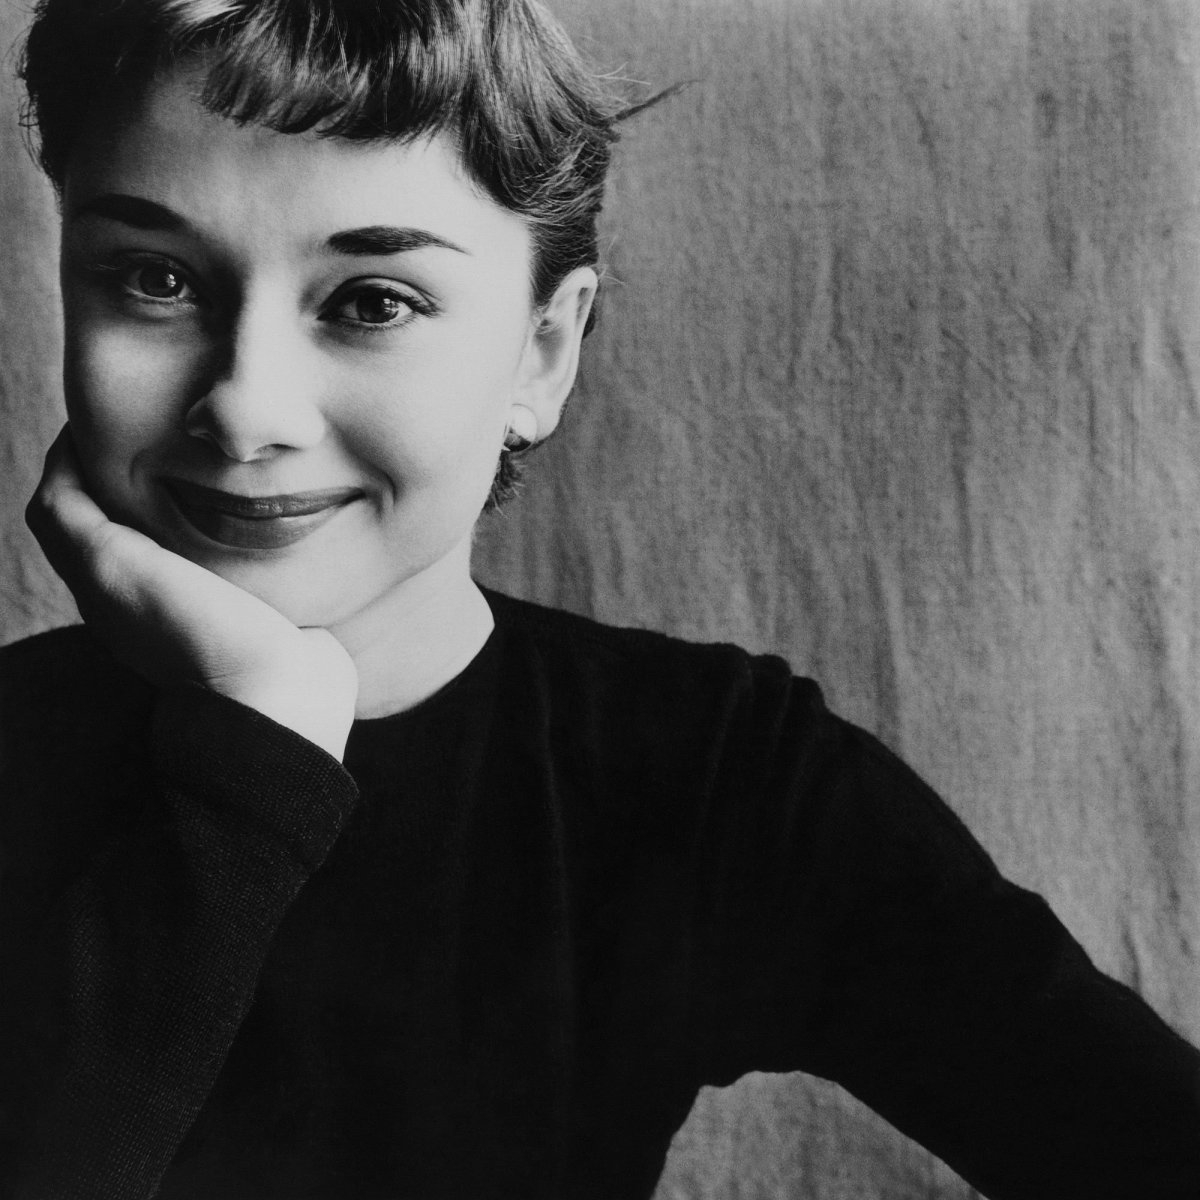 Audrey died in 1993 in Switzerland at the age of 63 after battling colon cancer. And her world war years were published 26 years after her death. But the pertinent question comes as to why she kept all those years hidden.